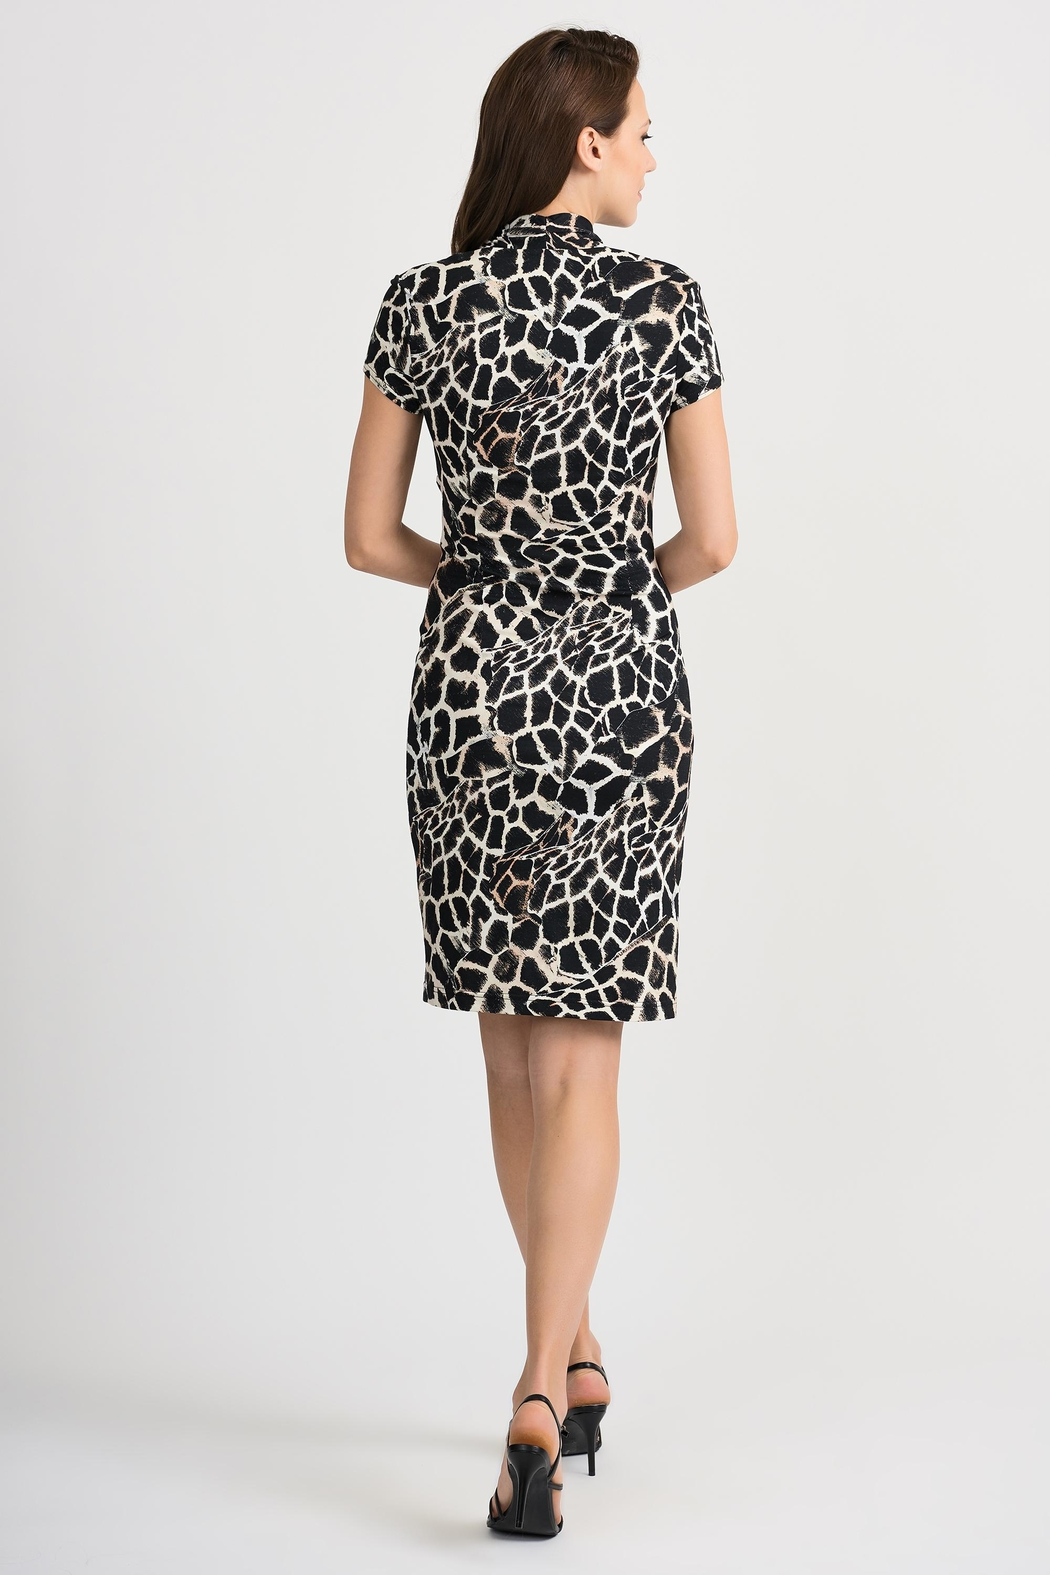 Joseph Ribkoff Giraffe Patterned Dress - Side Cropped Image